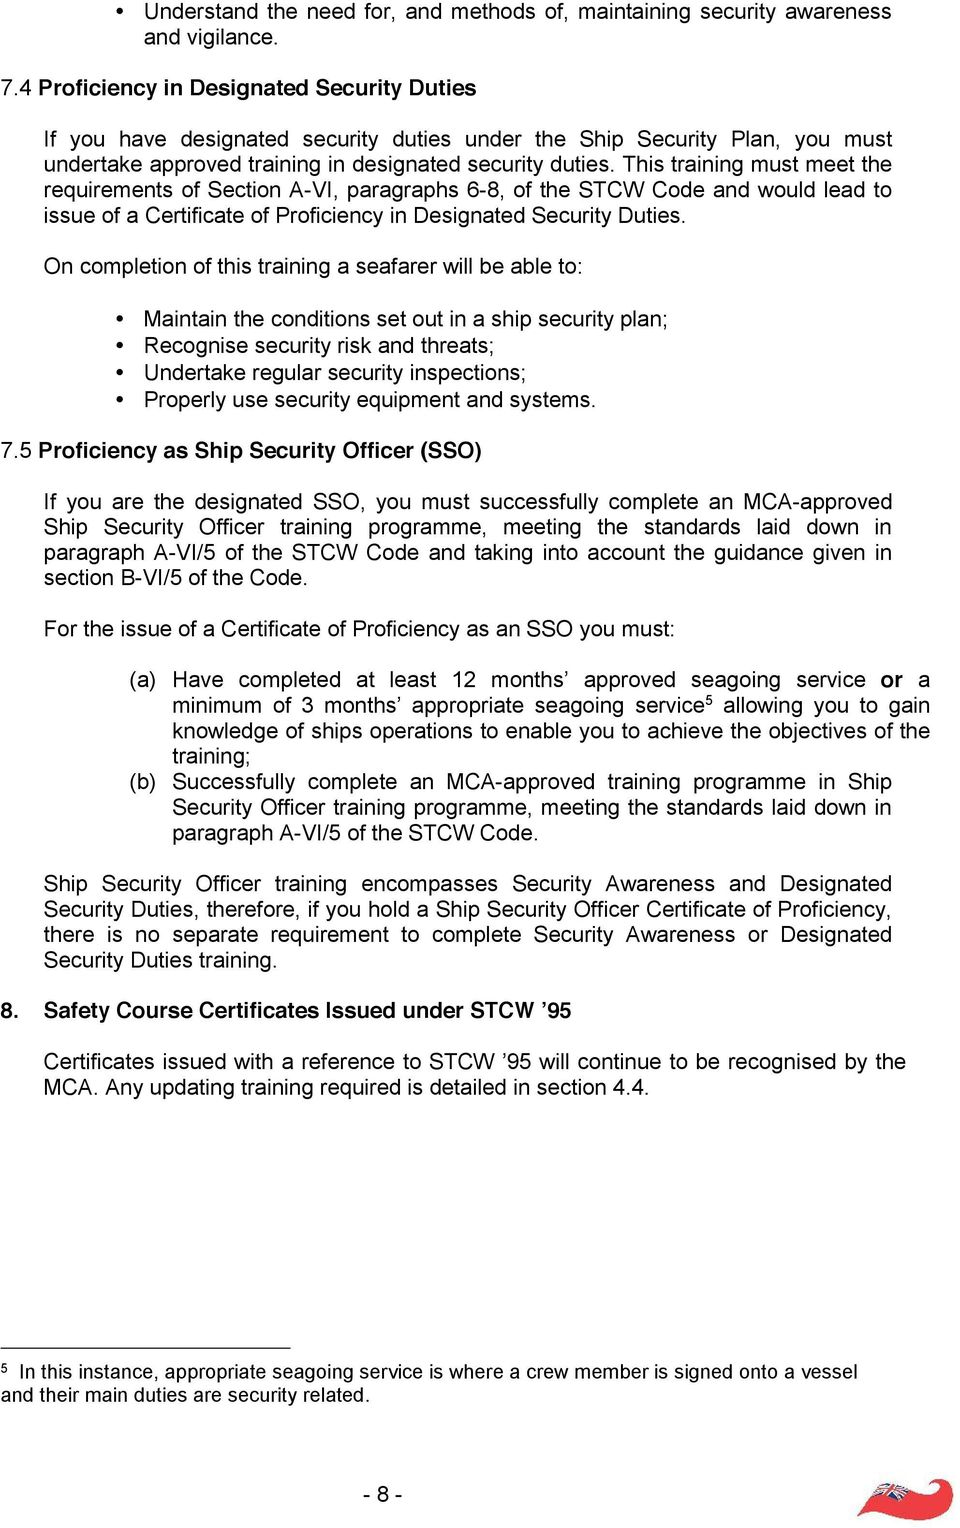 This training must meet the requirements of Section A-VI, paragraphs 6-8, of the STCW Code and would lead to issue of a Certificate of Proficiency in Designated Security Duties.